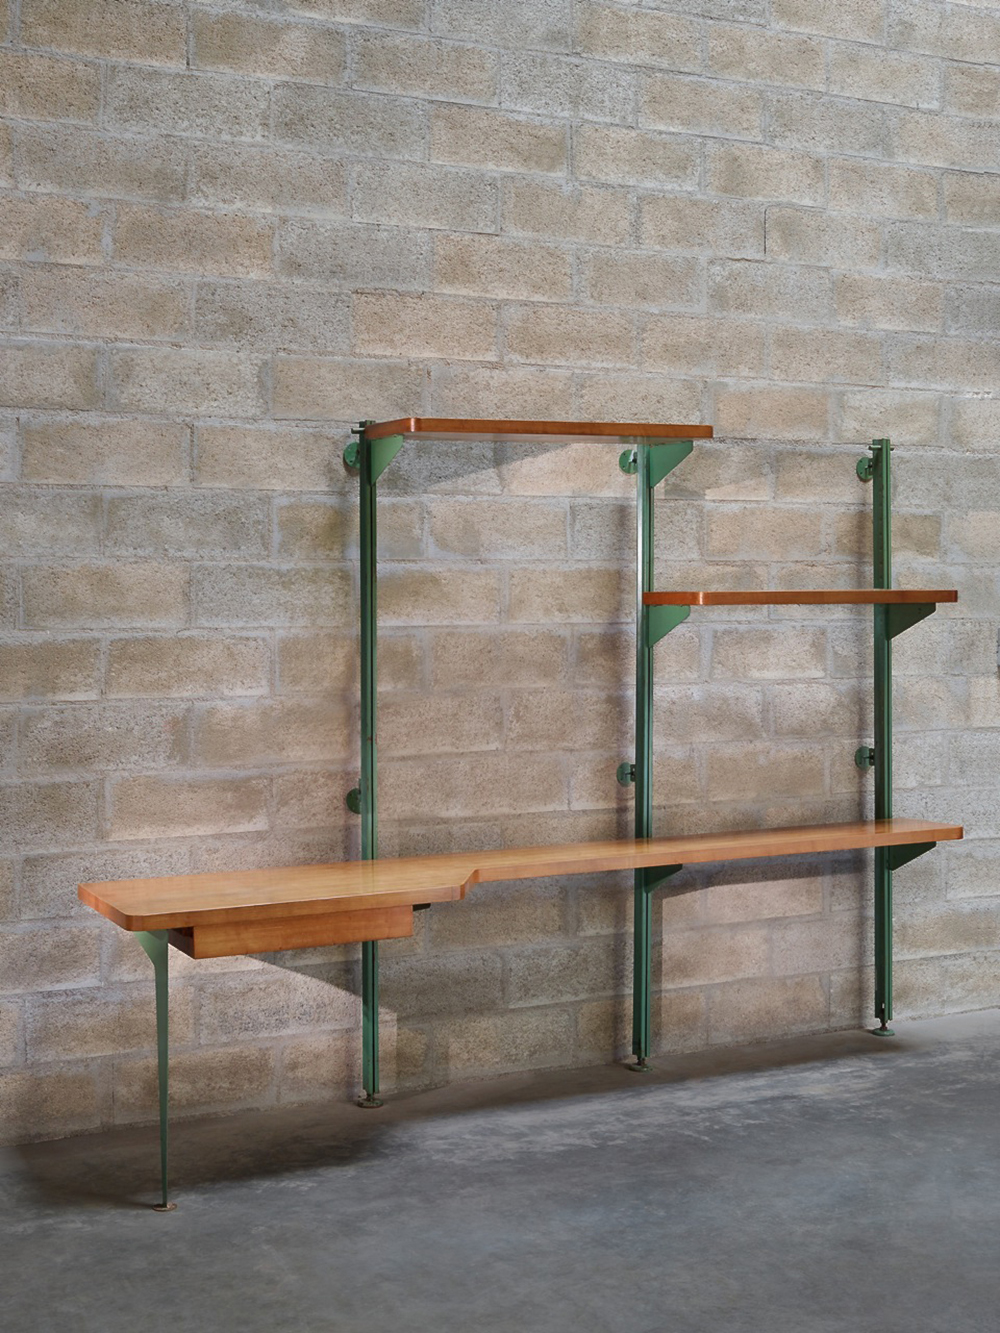 © Marie Clérin / Laffanour Galerie Downtown, Paris Jean Prouvé (1901-1984), Important special commissionned green lacquered steel and wild cherry wood suspended shelf comprising desk, 1951  81.50 x 110.50 x 27.50 in.